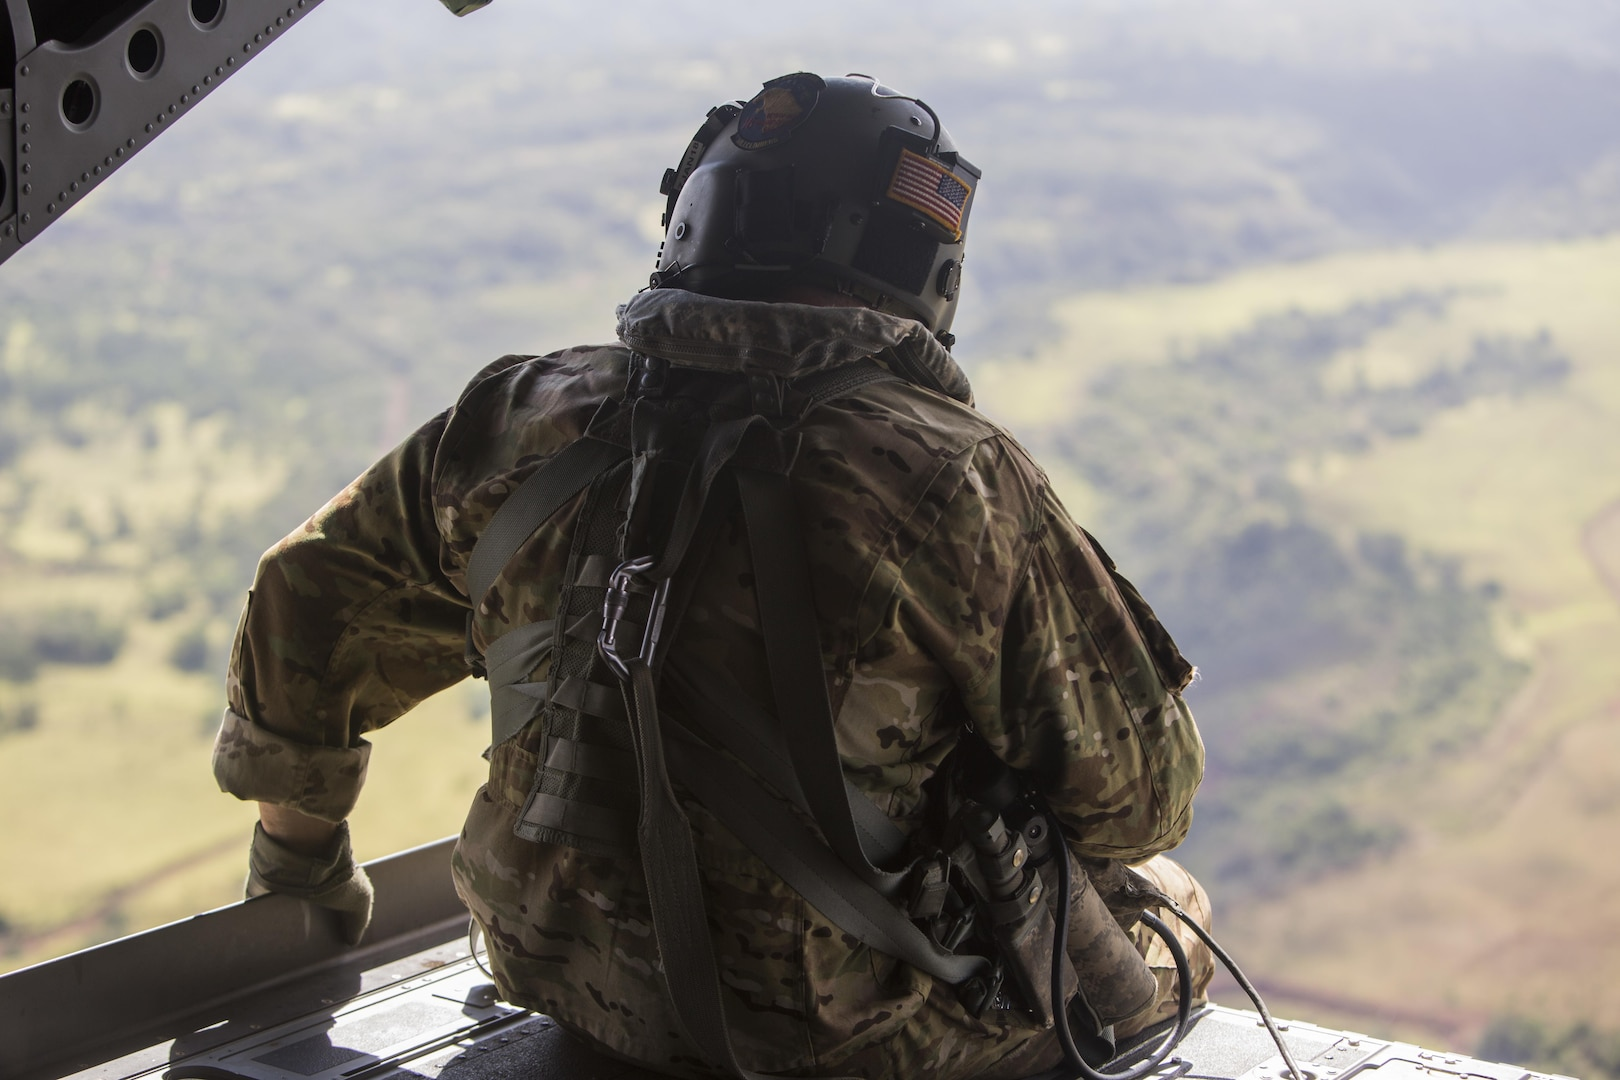 SCHOFIELD BARRACKS – A U.S. Army crew chief observes the outside of a CH-47 Chinook helicopter during a high altitude airborne jump at Schofield Barracks, July 14, 2017. Marines with 4th Force Reconnaissance Company trained with U.S. Army Special Forces to maintain proficiency in completing static line and high altitude free fall airborne jumps. (U.S. Marine Corps photo by Lance Cpl. Isabelo Tabanguil)